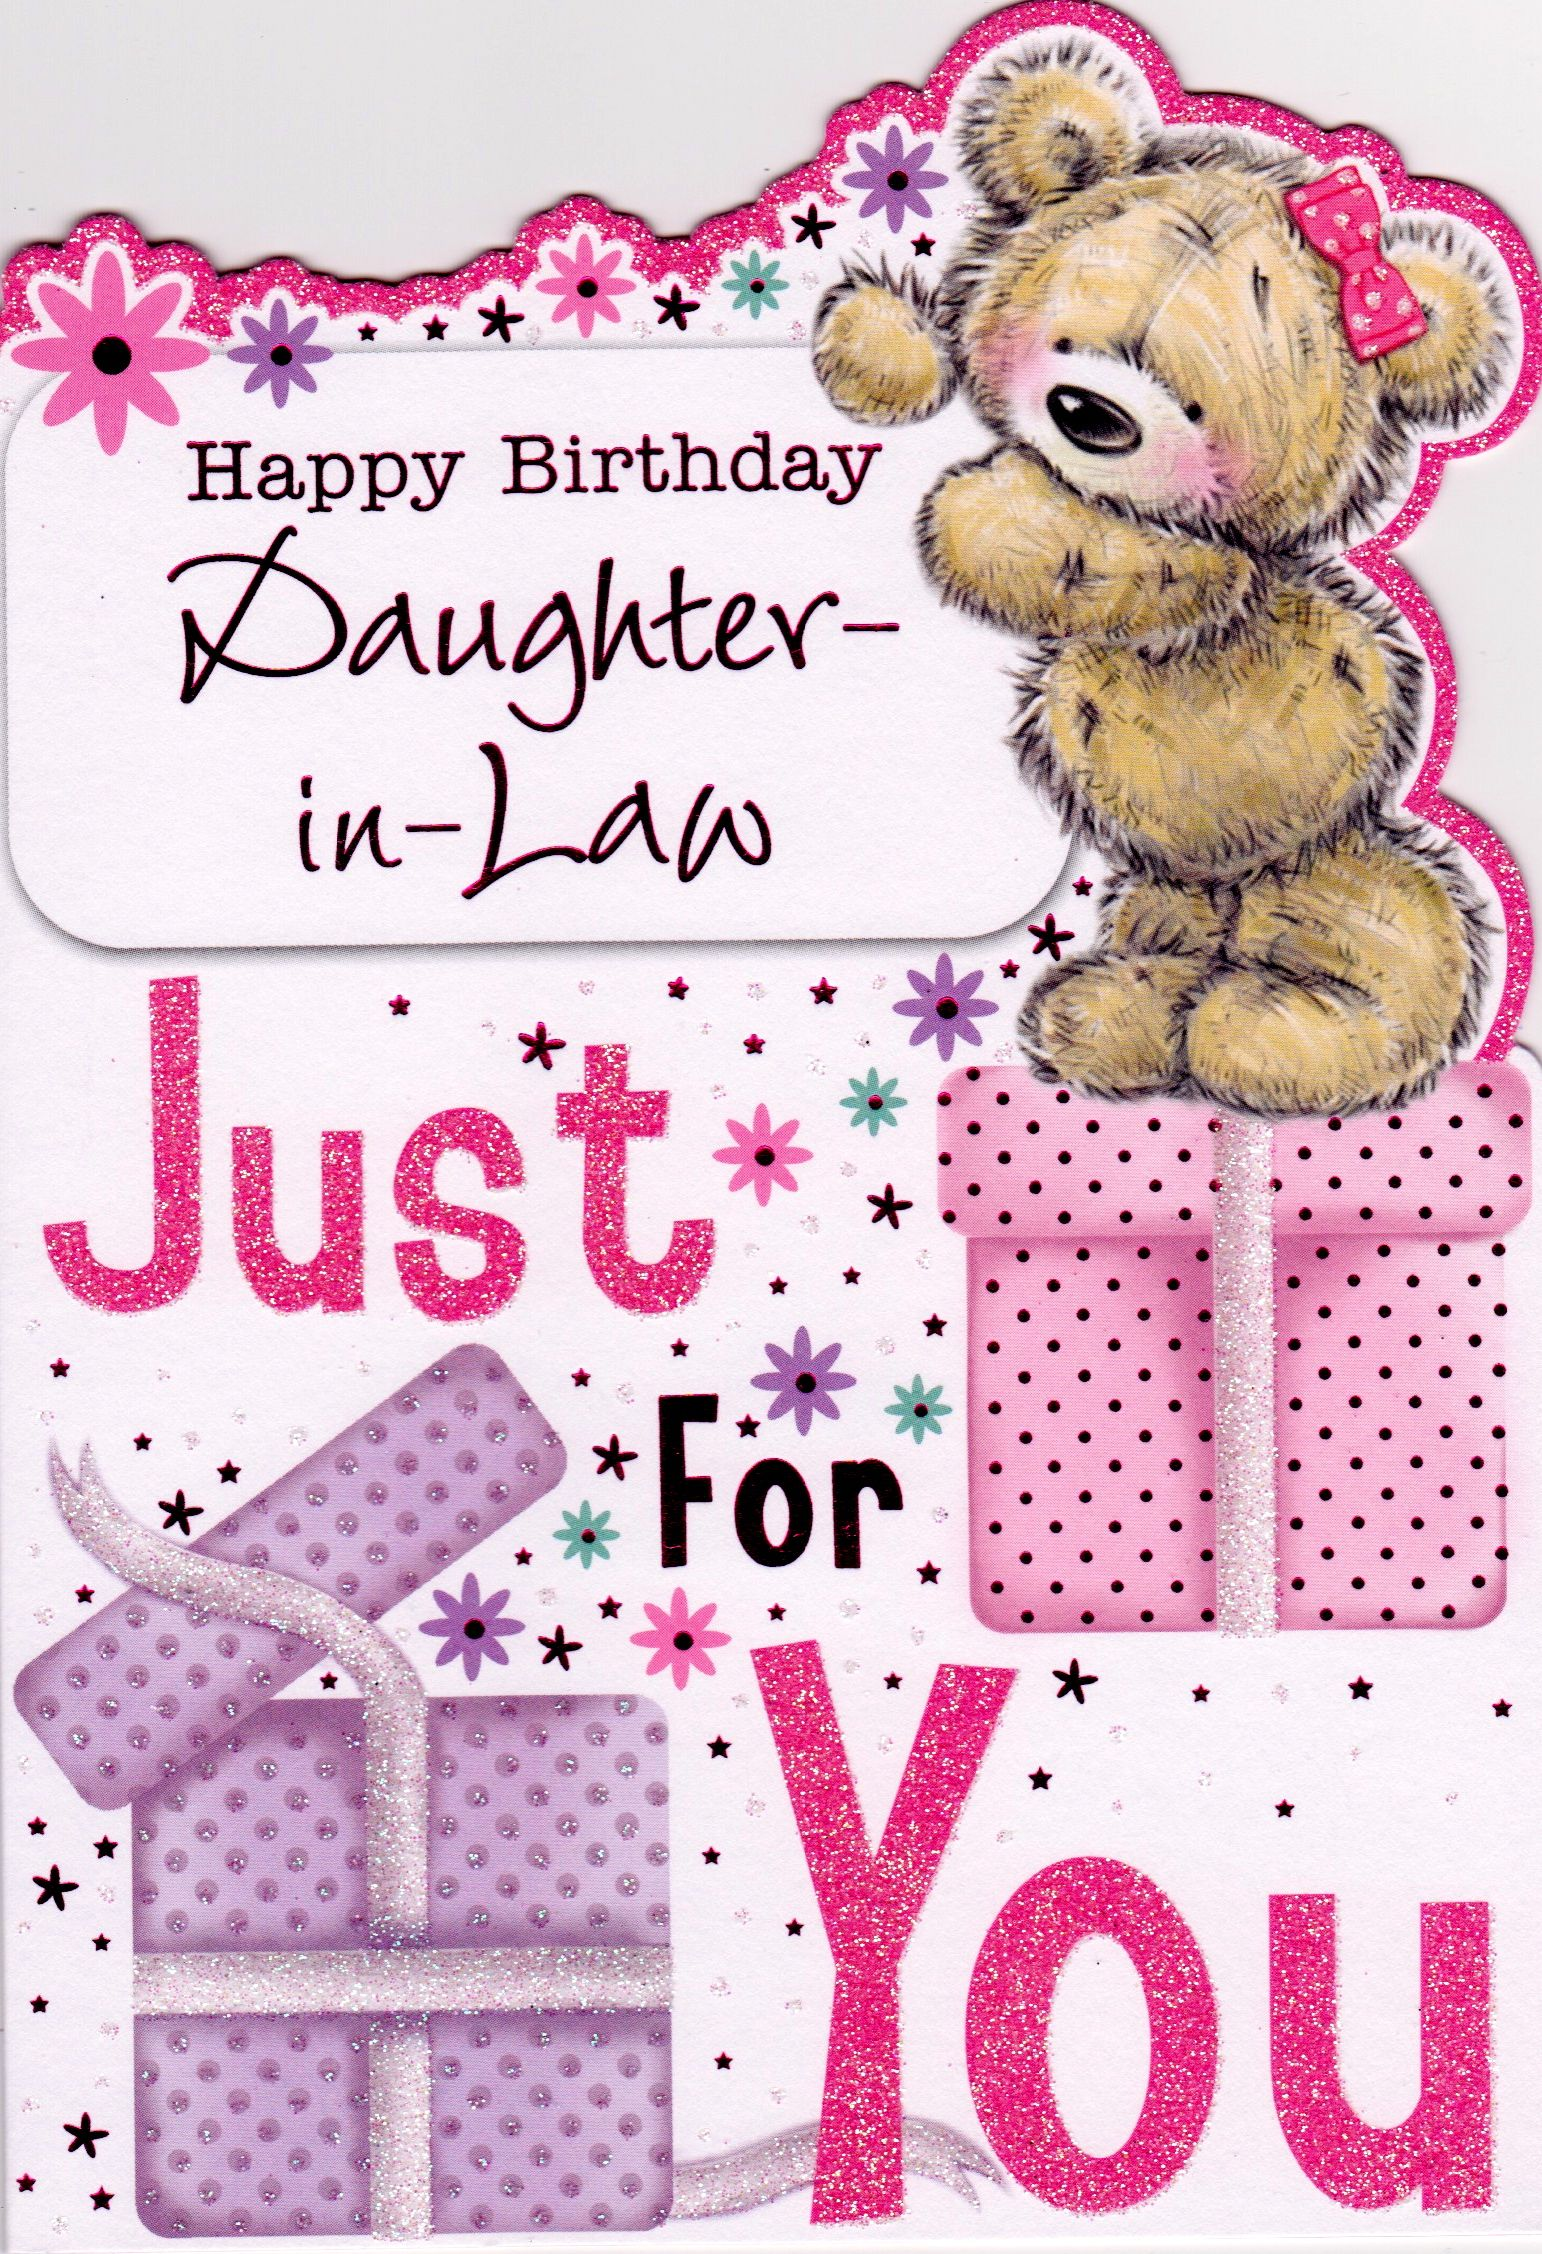 Blessings For Daughter In Law Google Search Happy Birthday Niece Happy Birthday Daughter Birthday Wishes For Daughter